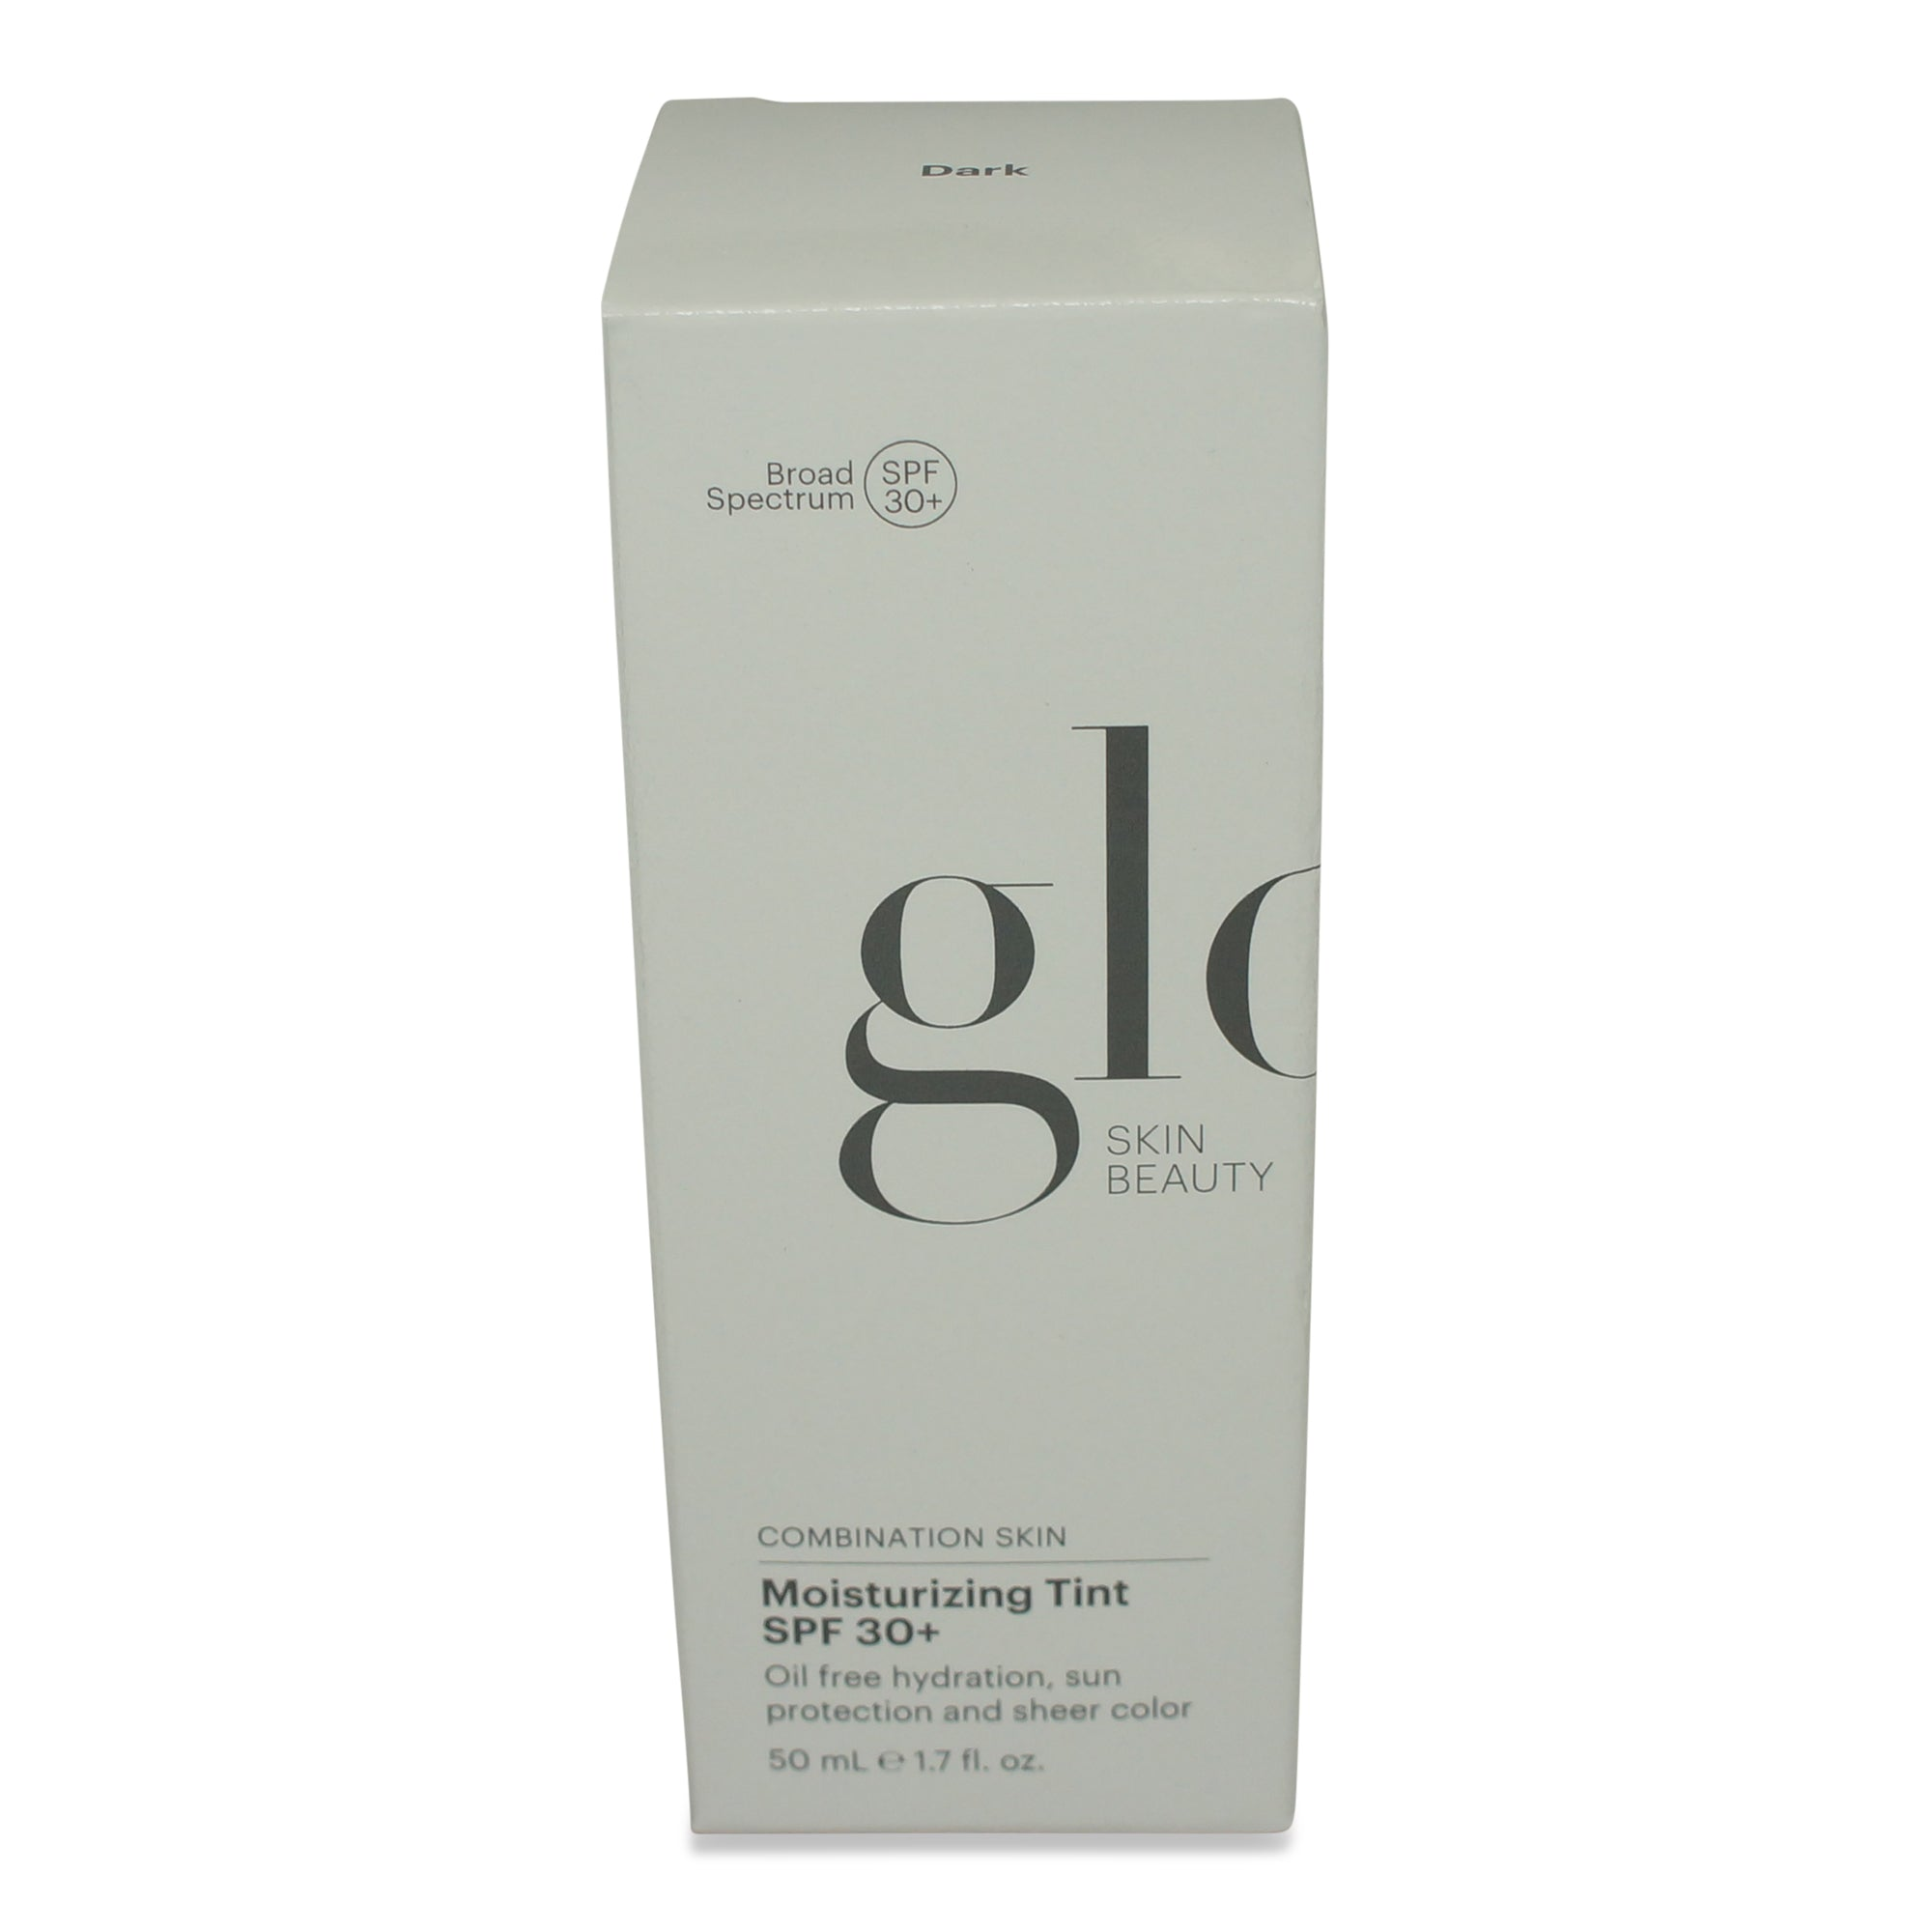 Glo Skin Beauty Moisturizing Tint Spf 30+ Dark 2 oz.